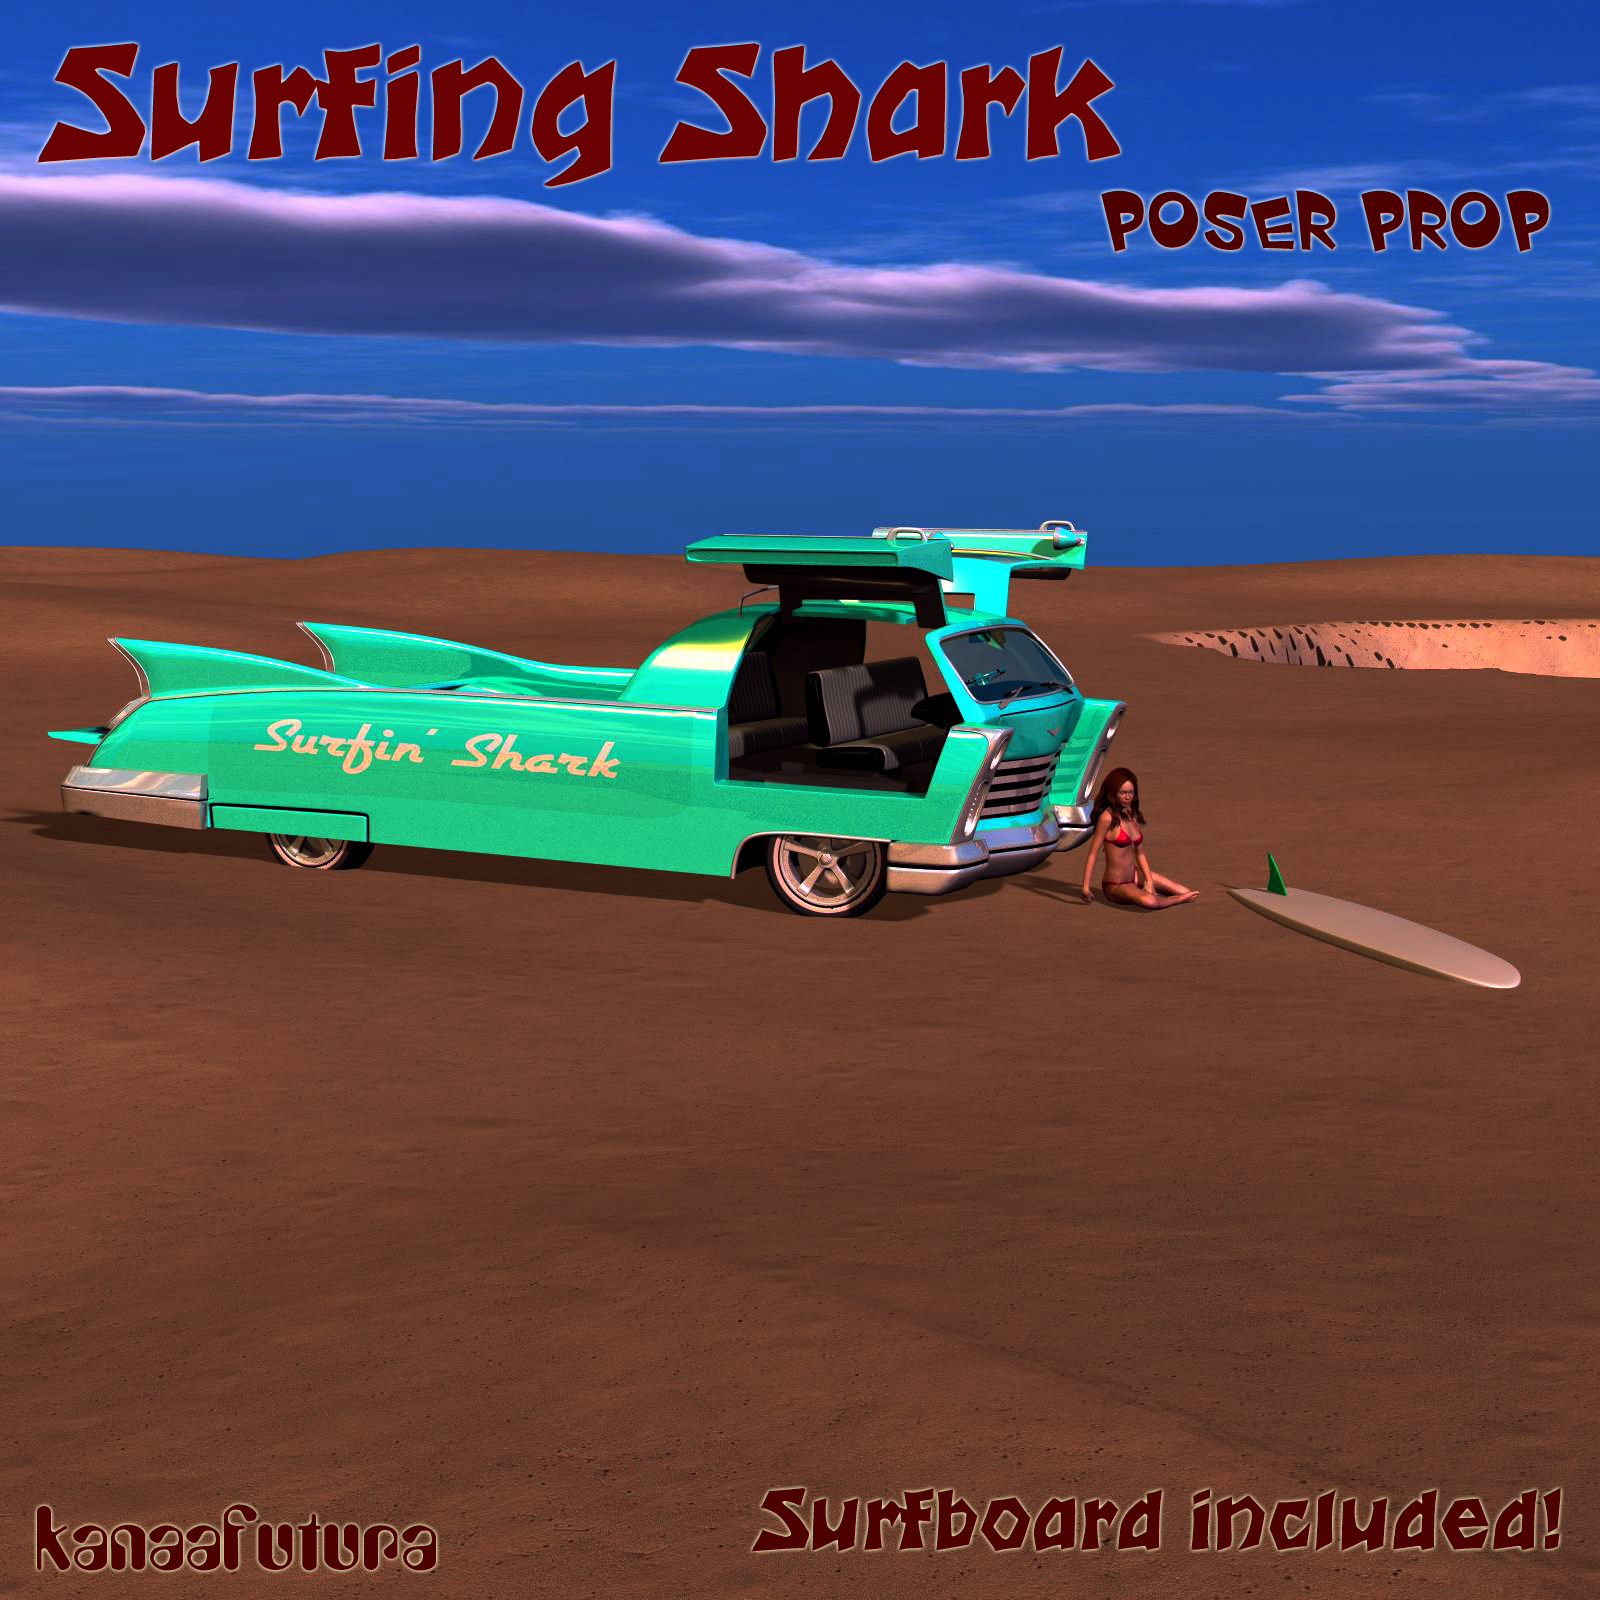 Surfing Shark poser prop by kanaa